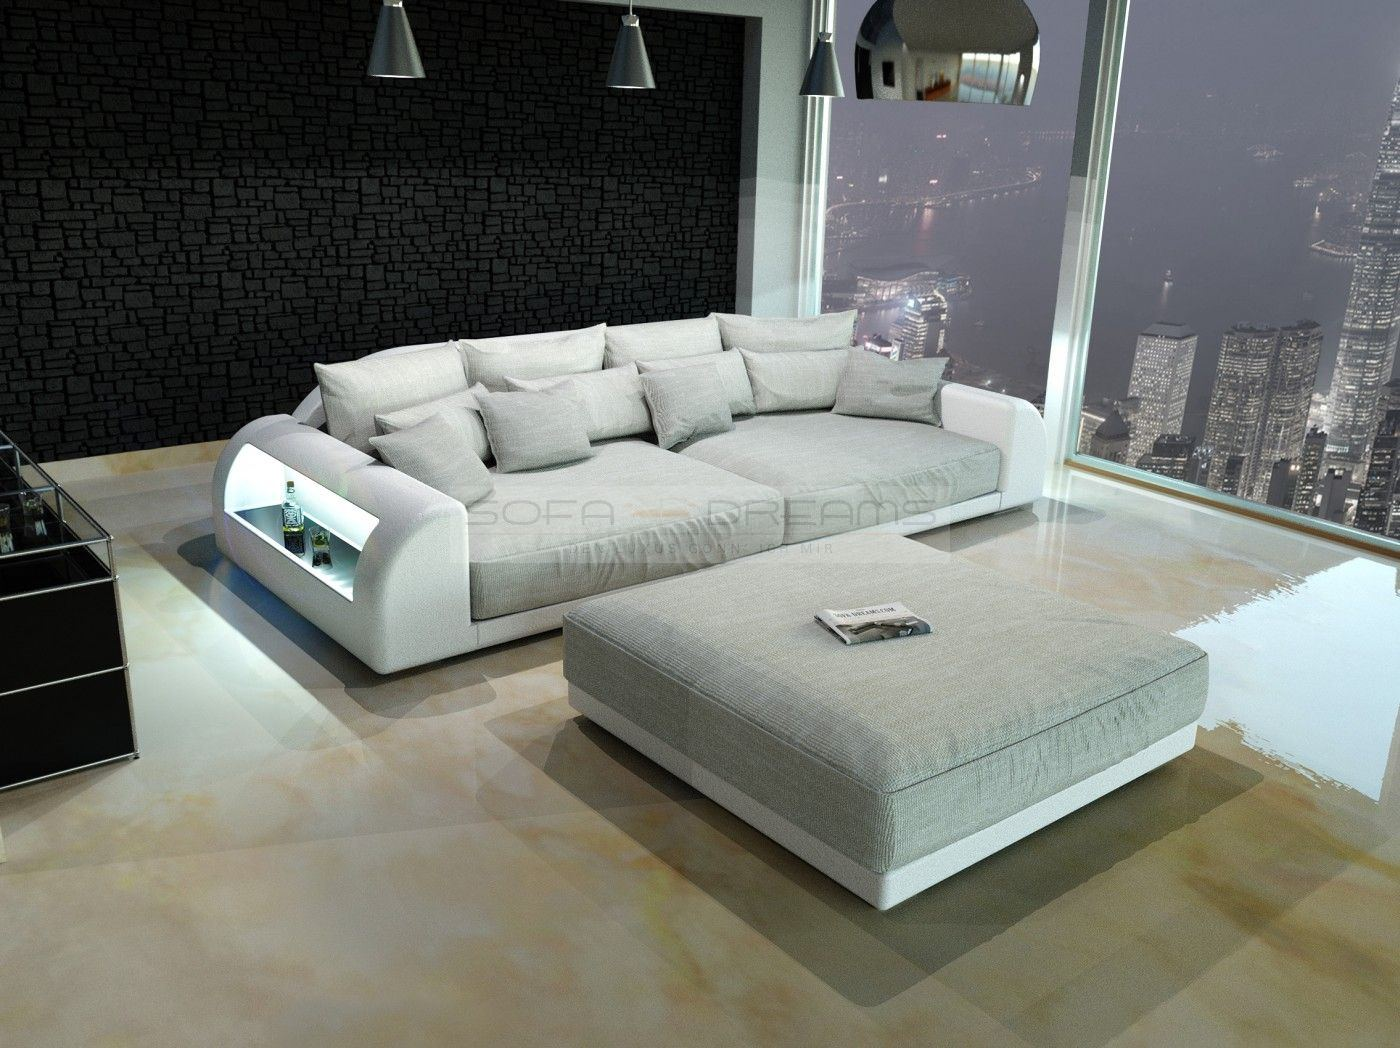 Xxl big sofa miami megasofa with illumination big sofa mega couch ebay Big sofa hocker